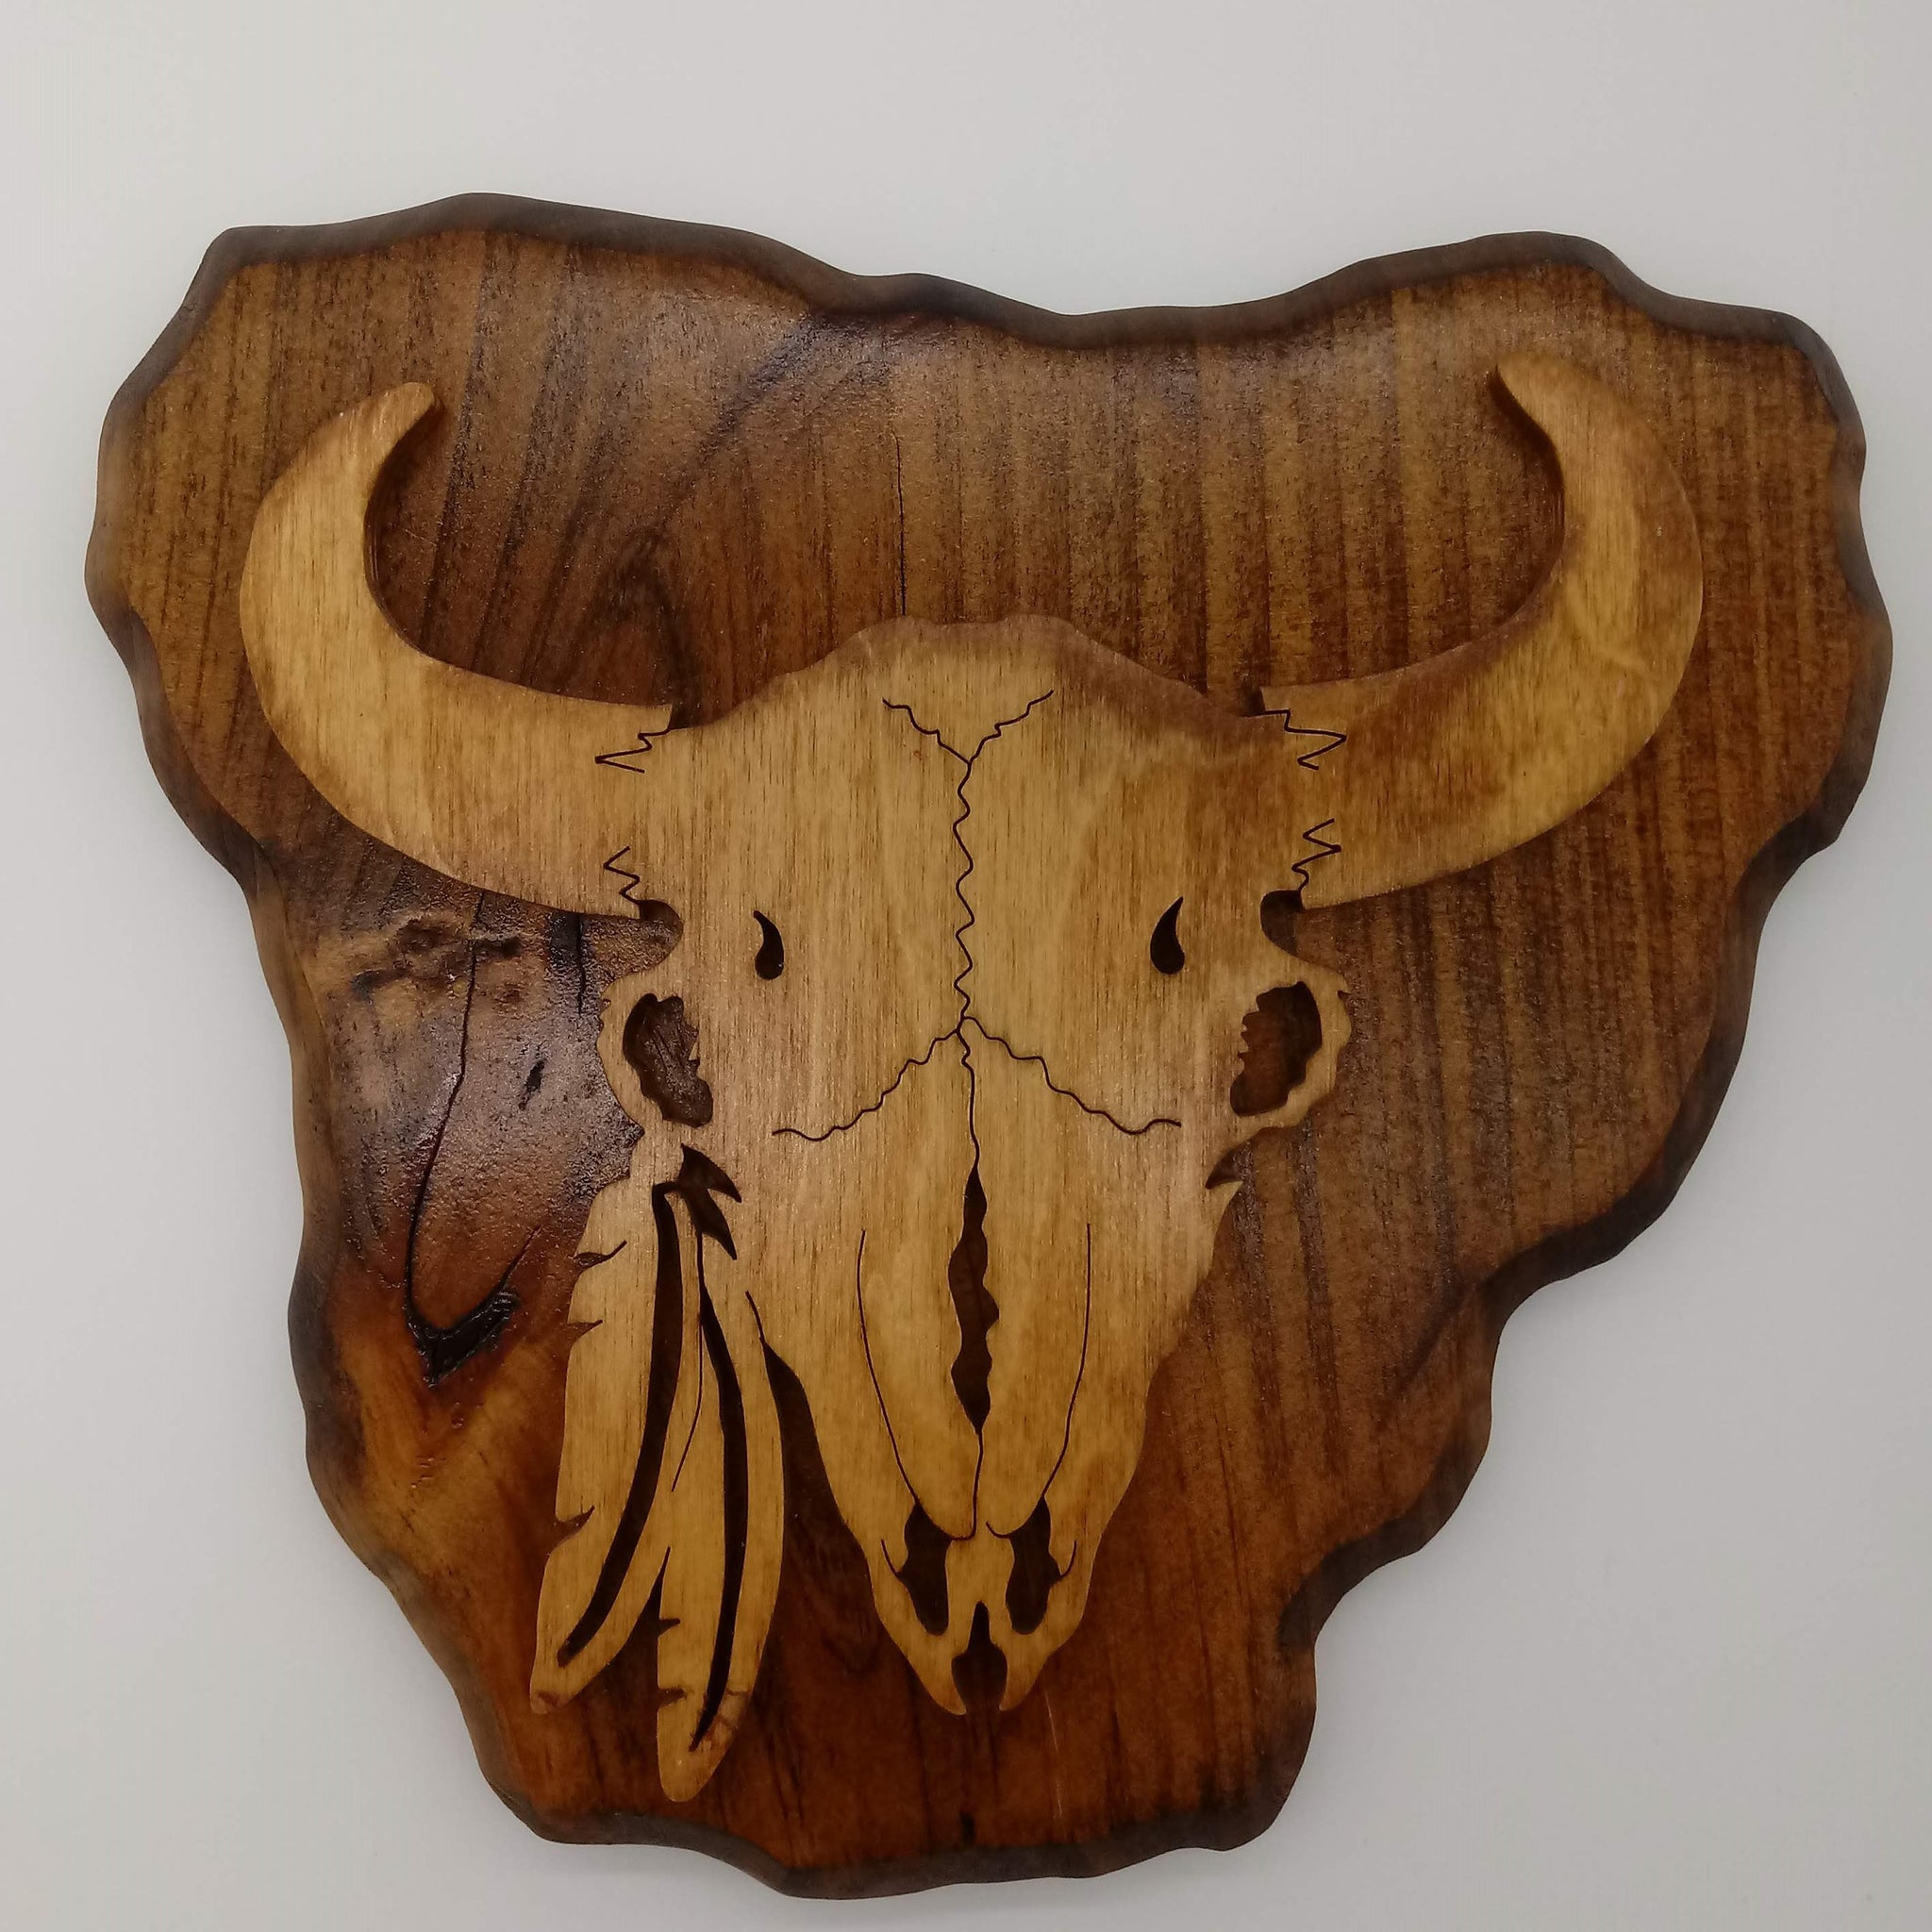 Native American Buffalo Skull with Feathers - Kripp's Kreations